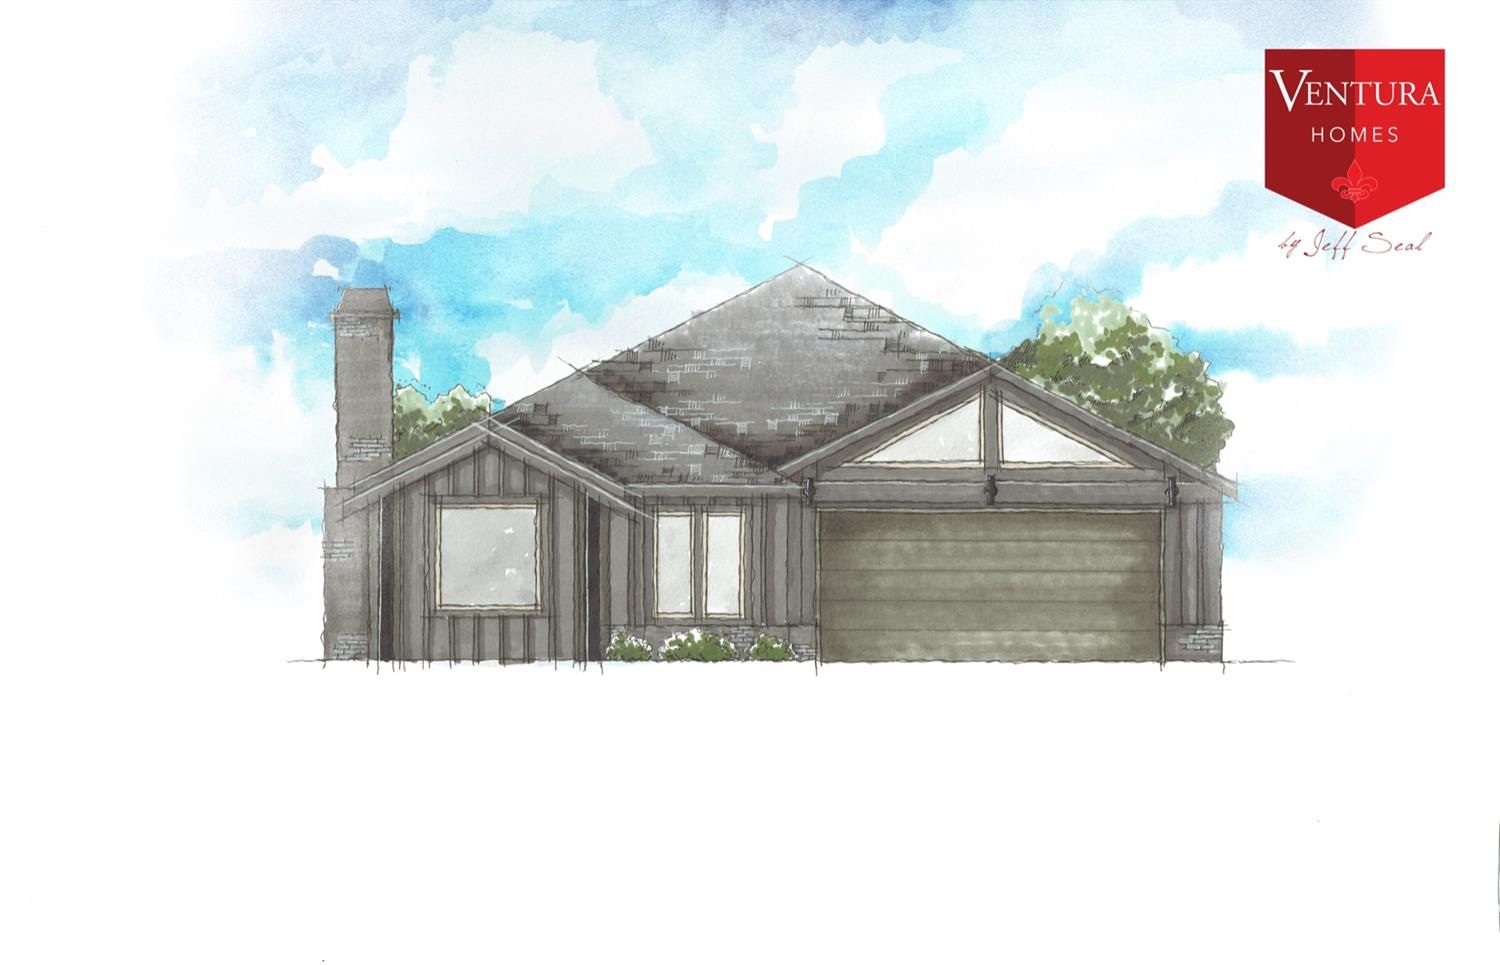 Be in this Amazing VENTURA HOMES New Construction by Late Spring 2020! Check out this 3/2/2 PLUS Bonus Room in Fox Ridge on Cul-De-Sac! Walk into Amazing Natural Light, Special Ceilings & Open floor plan great for Entertaining! Beautiful Kitchen offers Spacious Island, Pantry with Barn Door, Stainless Steel Appliances, Gas Range w/Decorative Vent hood! Isolated Master Suite w/Built In Desk, Double Granite Vanities, Walk-in Closet, Tiled Shower & Soaking Tub! Guest Bedrooms offer Special Ceilings & walk-in closets! Heated & Cooled Bonus Room leads to Fenced Backyard, Covered Patio, Sprinklers & Sod! Additional Features include Spray Foam Insulation, Faux Wood Blinds, Designer Hardware, Spacious Walk-in Closets, Built-in Linen Storage in Baths & Laundry, 1-2-10 Builder's Home Warranty...Cooper ISD! Close to Restaurants, Shopping, Medical Center & University! Come see what the Ventura Homes Difference is all about!